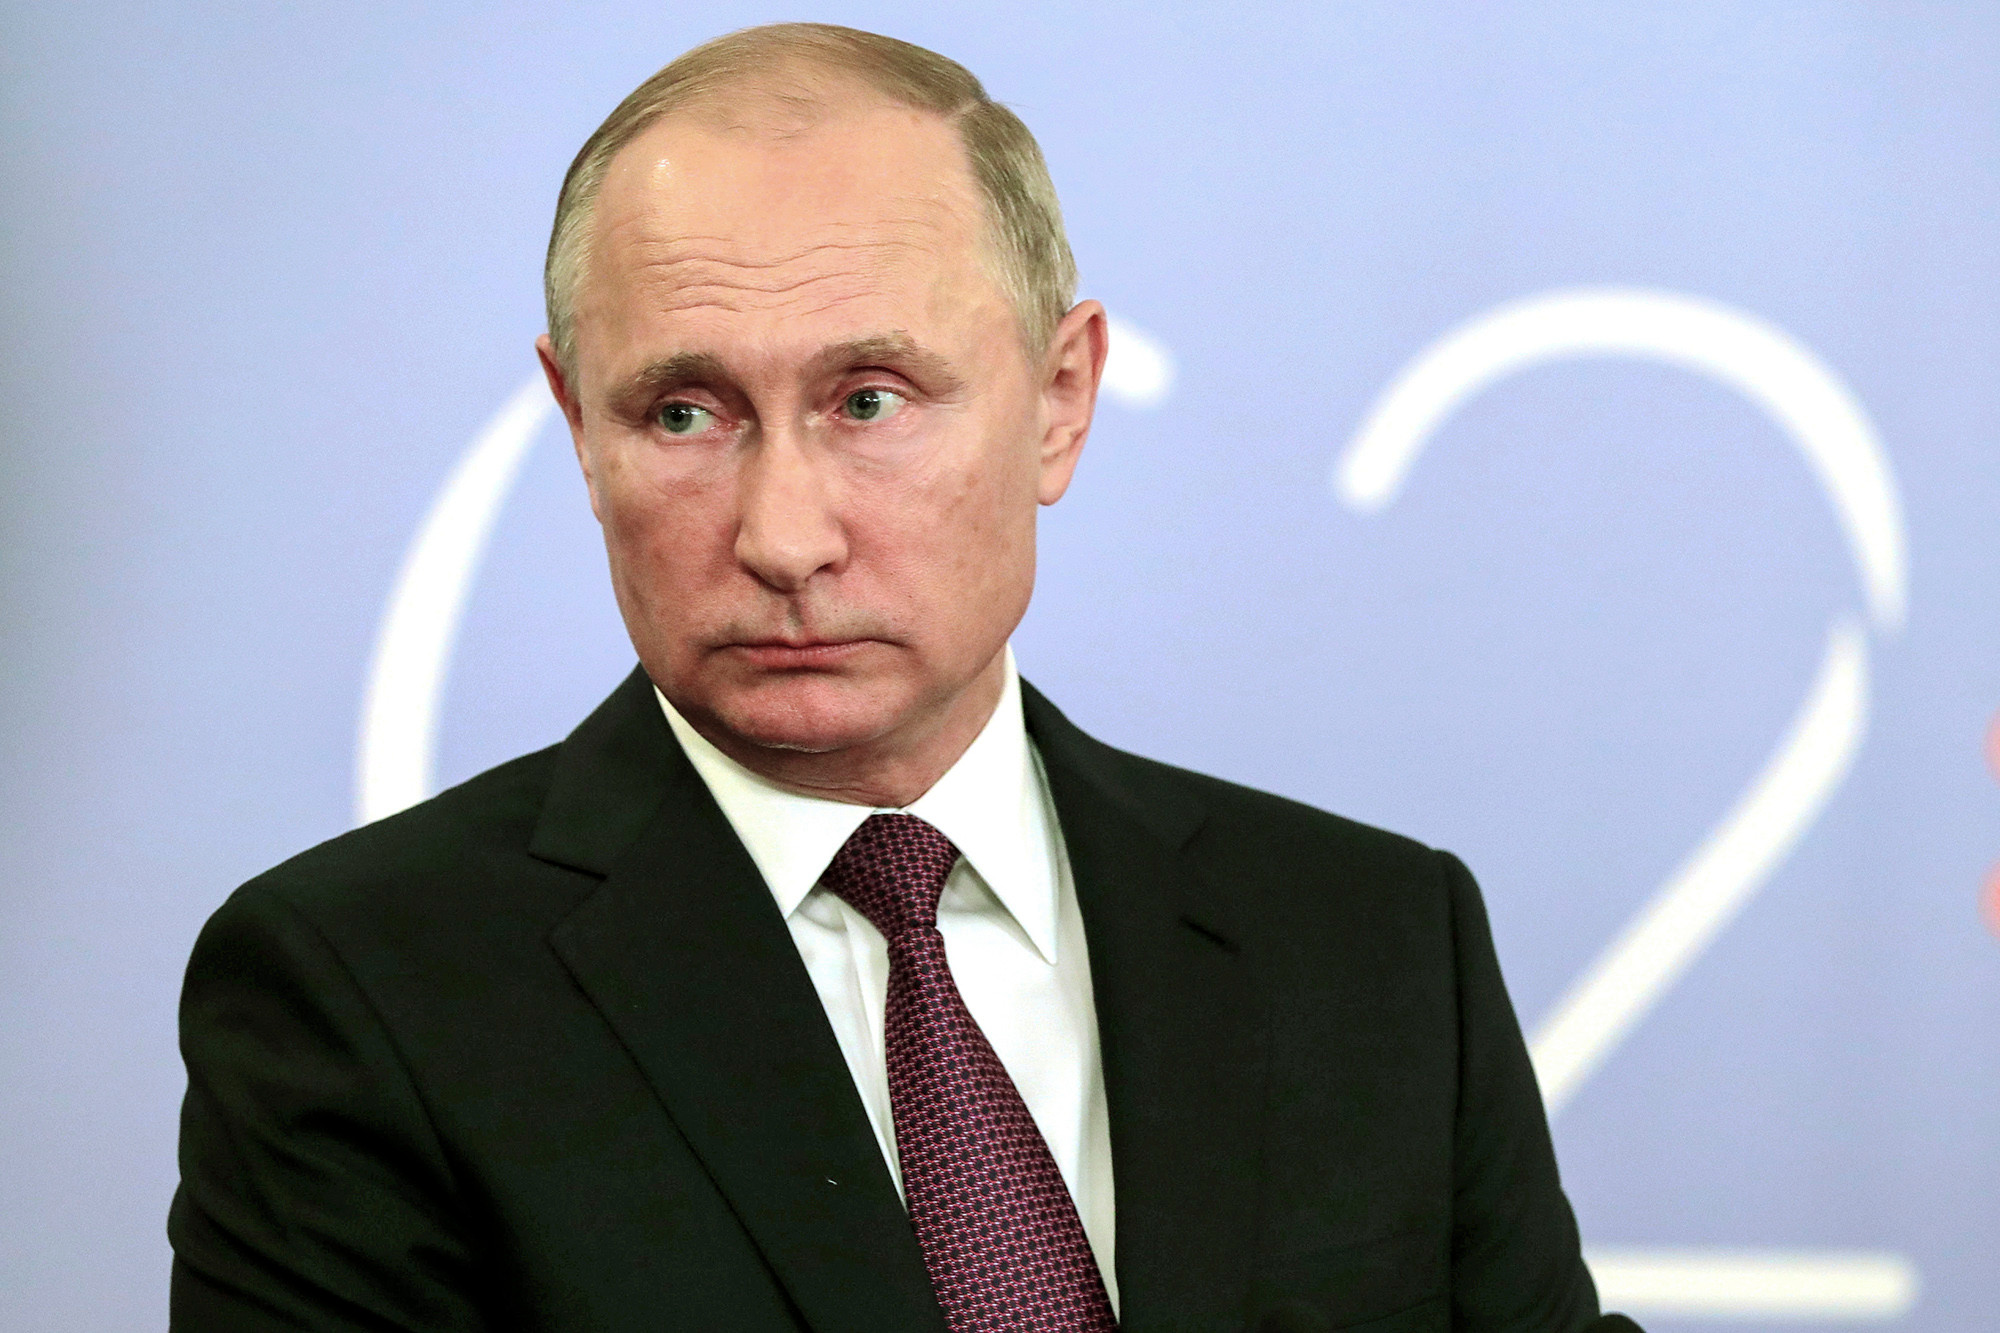 Putin warns US against walking away from arms treaty talks